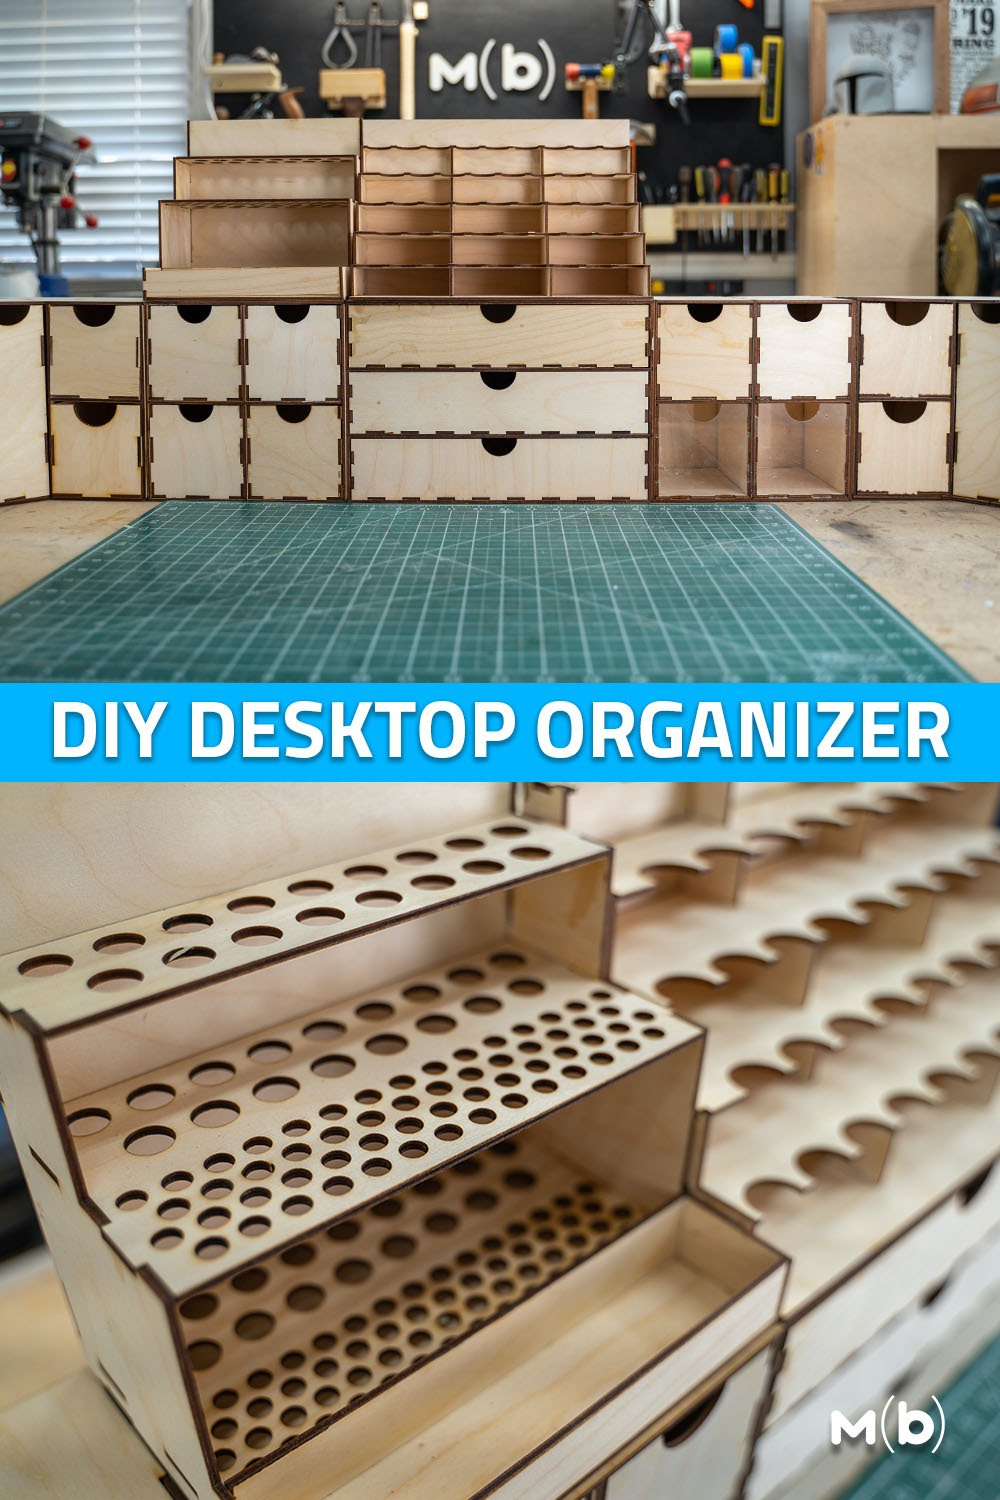 Build a DIY Miniature Organizer from laser cut plywood. Includes free plans. Good setup for miniatures!